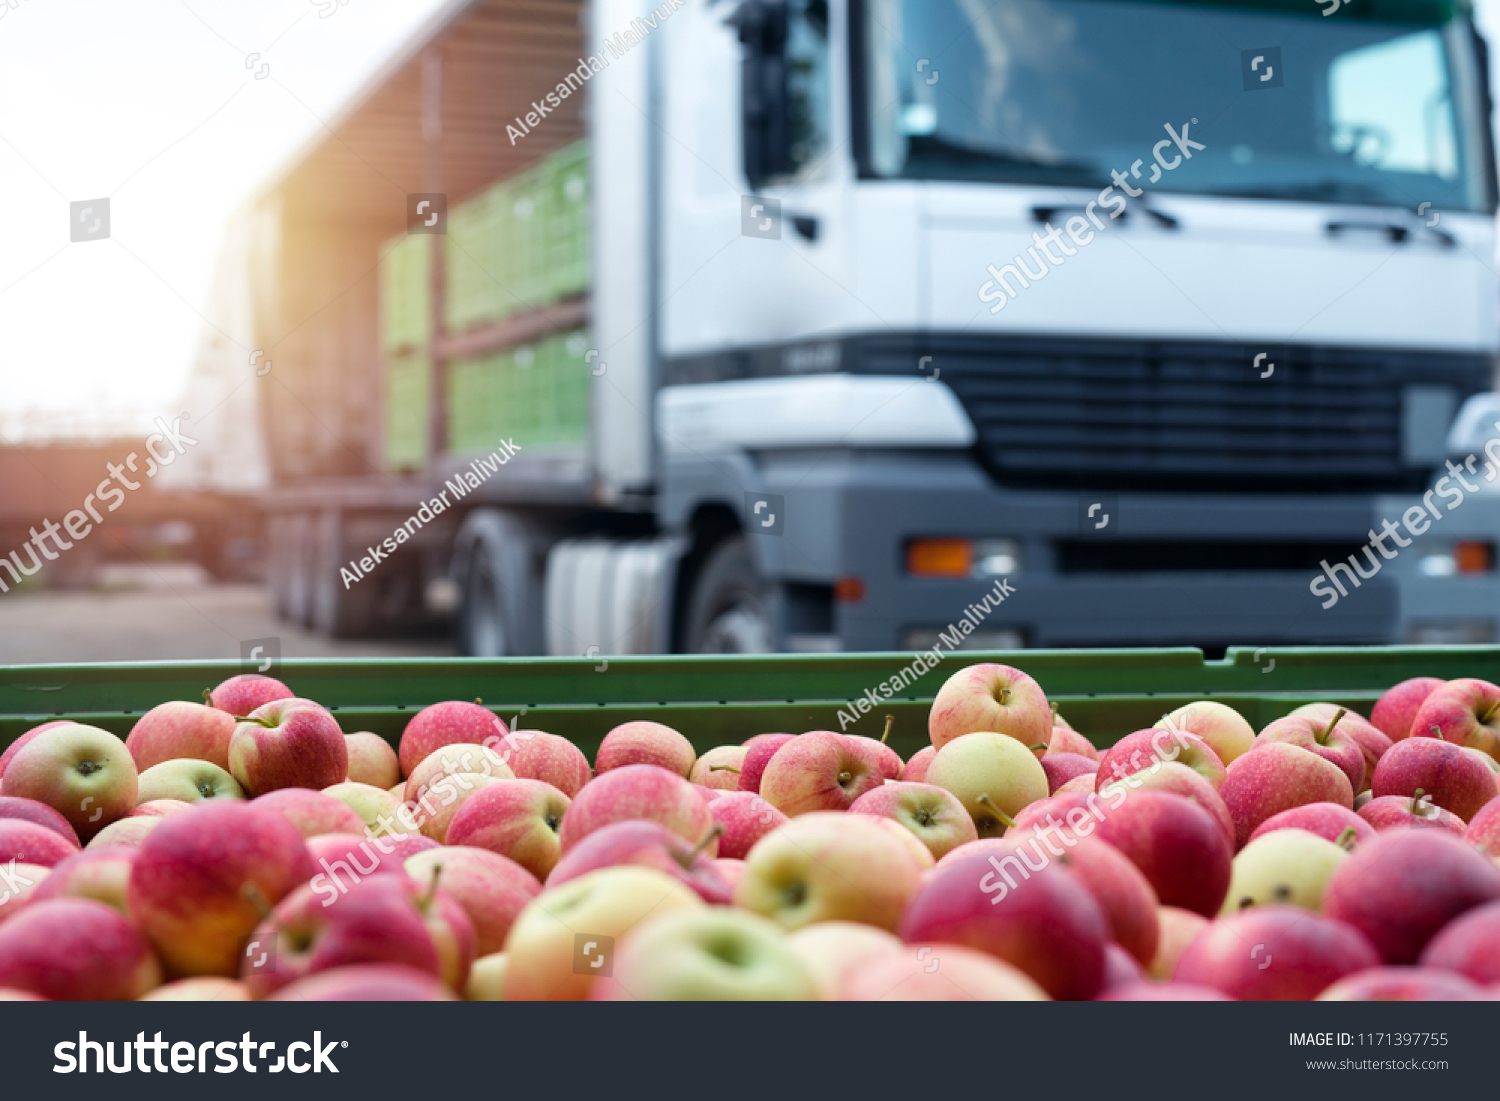 Fruit and food distribution. Truck loaded with containers full of apples ready to be shipped to the market. #1171397755